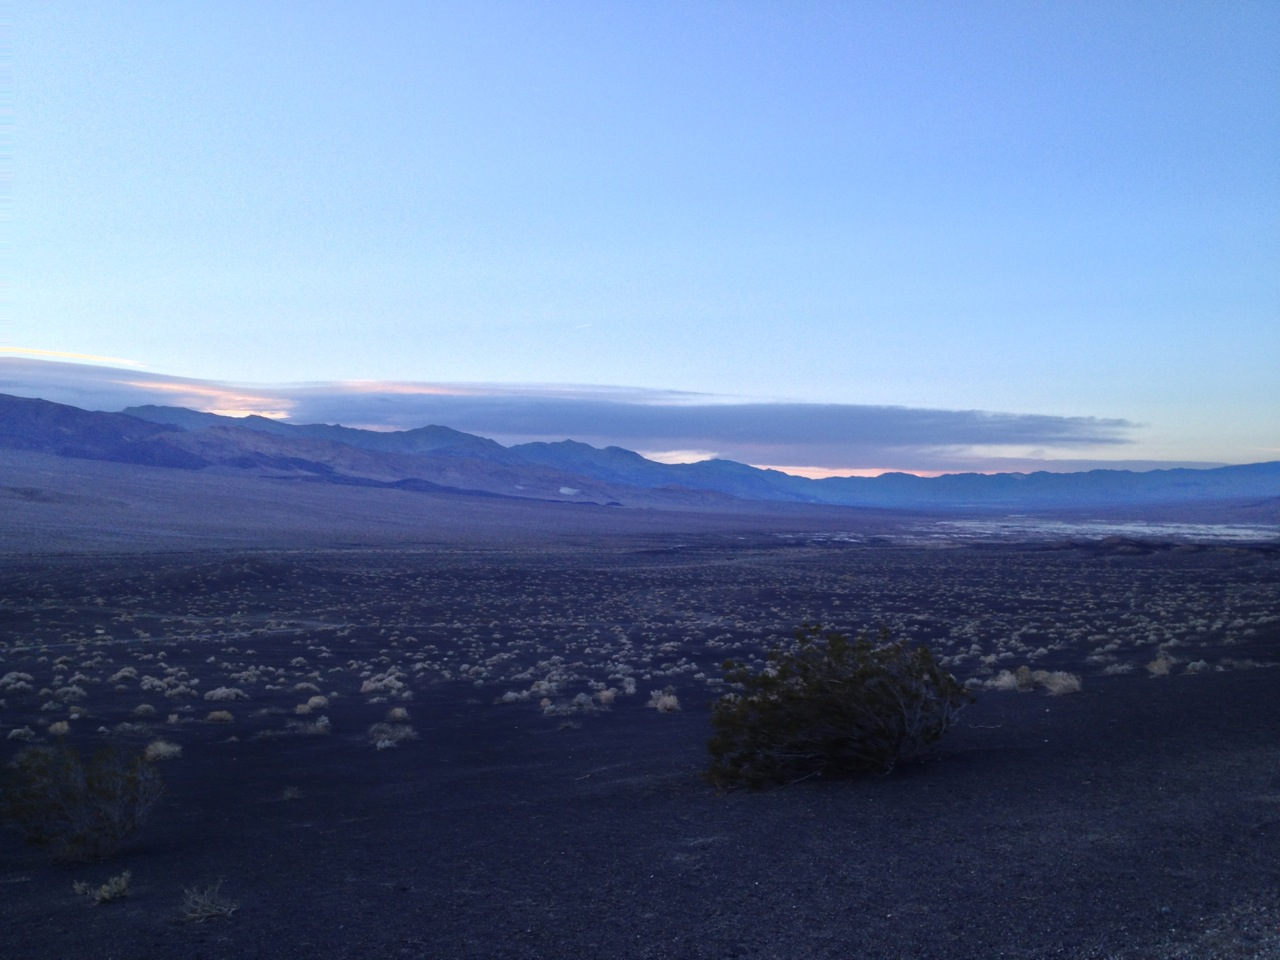 Plains to the northwest of the crater, just after sunset.